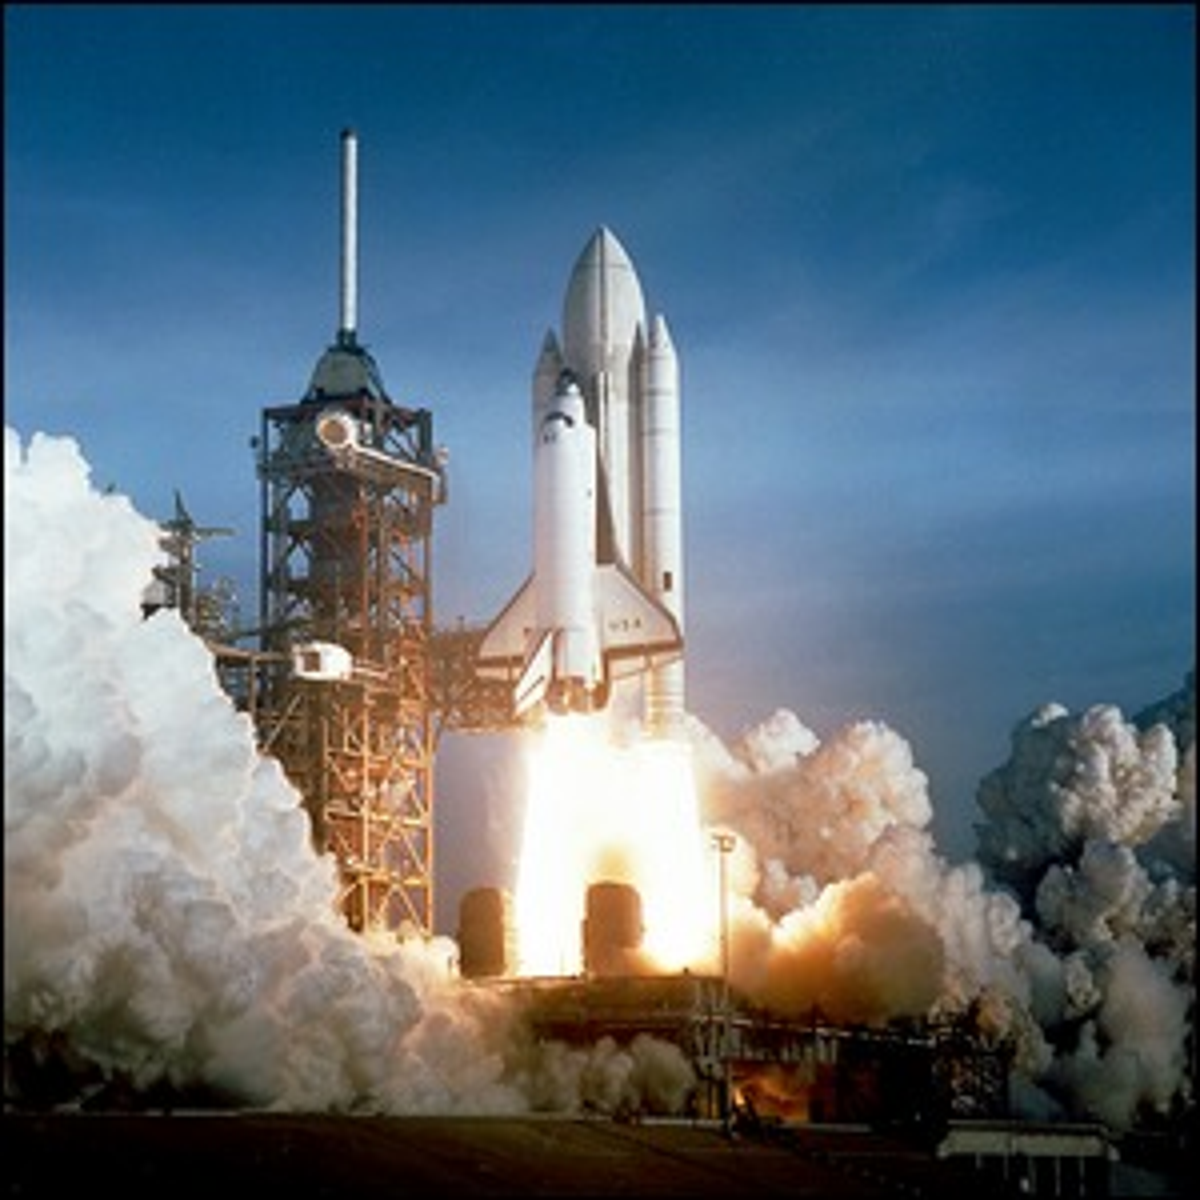 The launch of STS-1 in 1981.